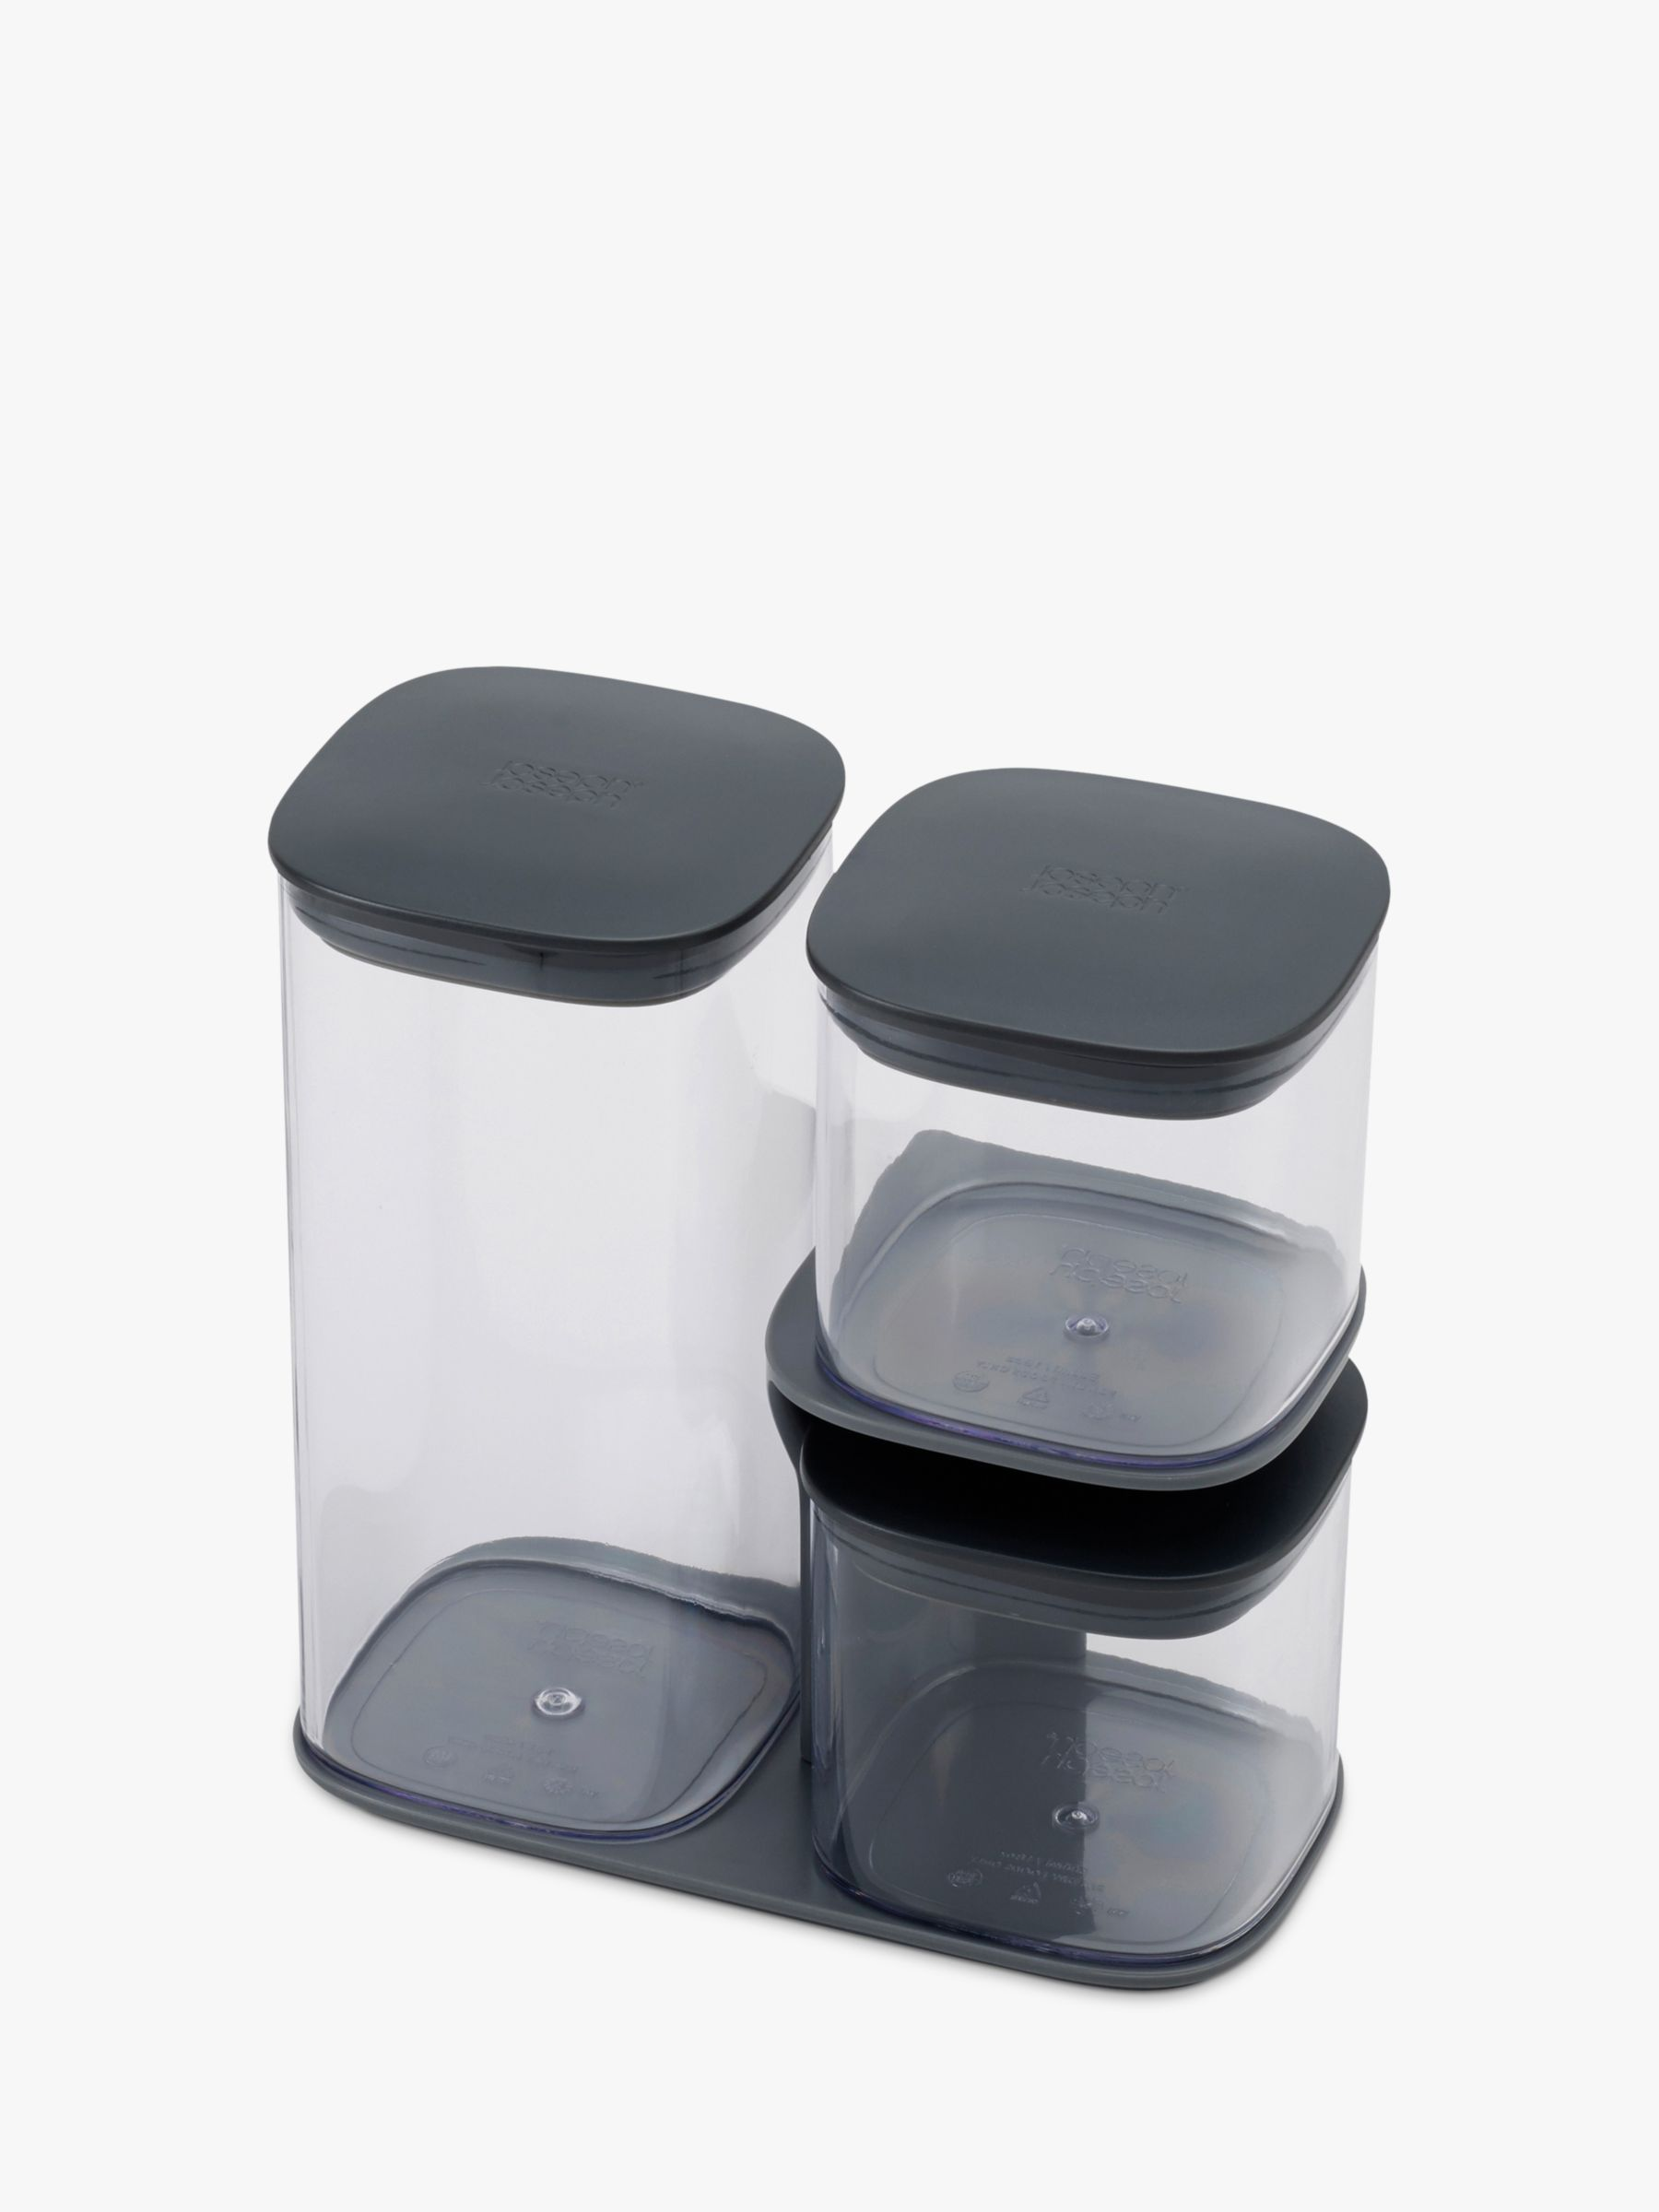 Joseph Joseph Joseph Joseph Podium Storage Container Set and Stand, 3 Pieces